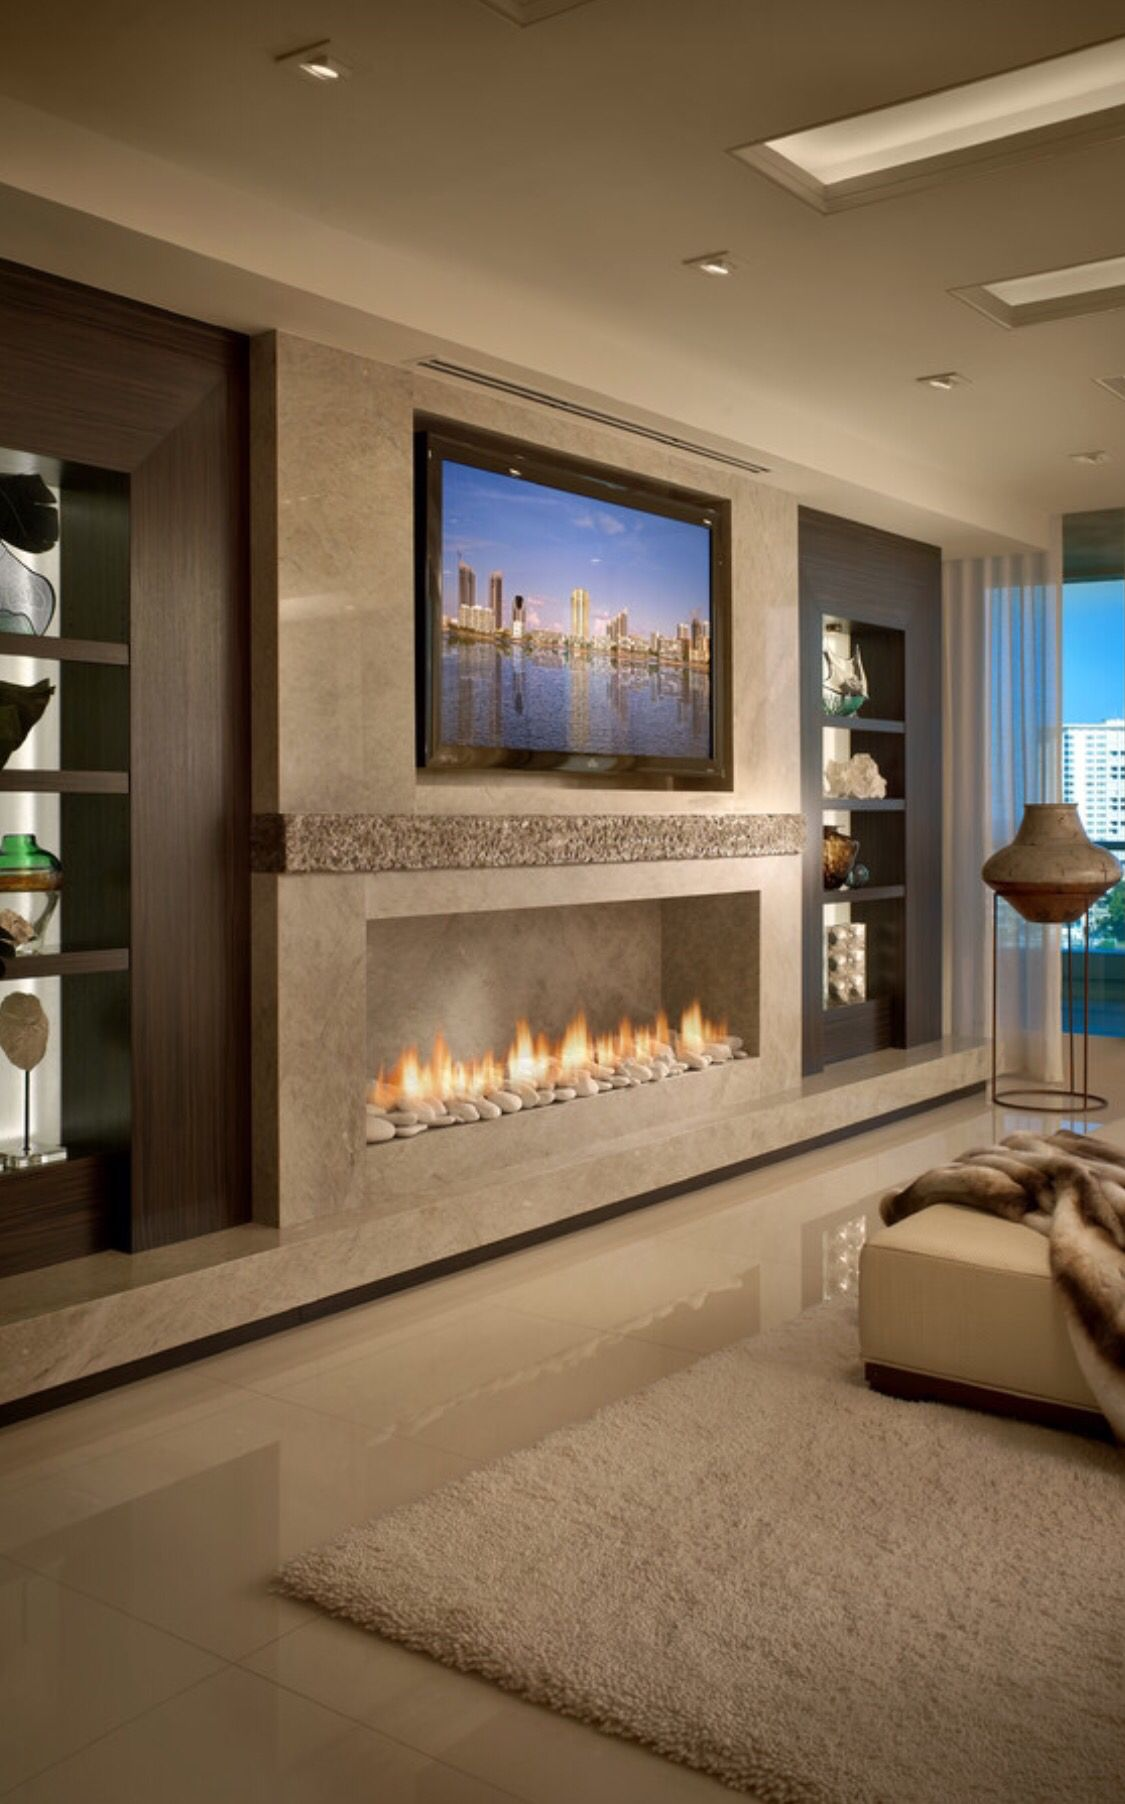 Great Fireplace With Images Luxurious Bedrooms Contemporary